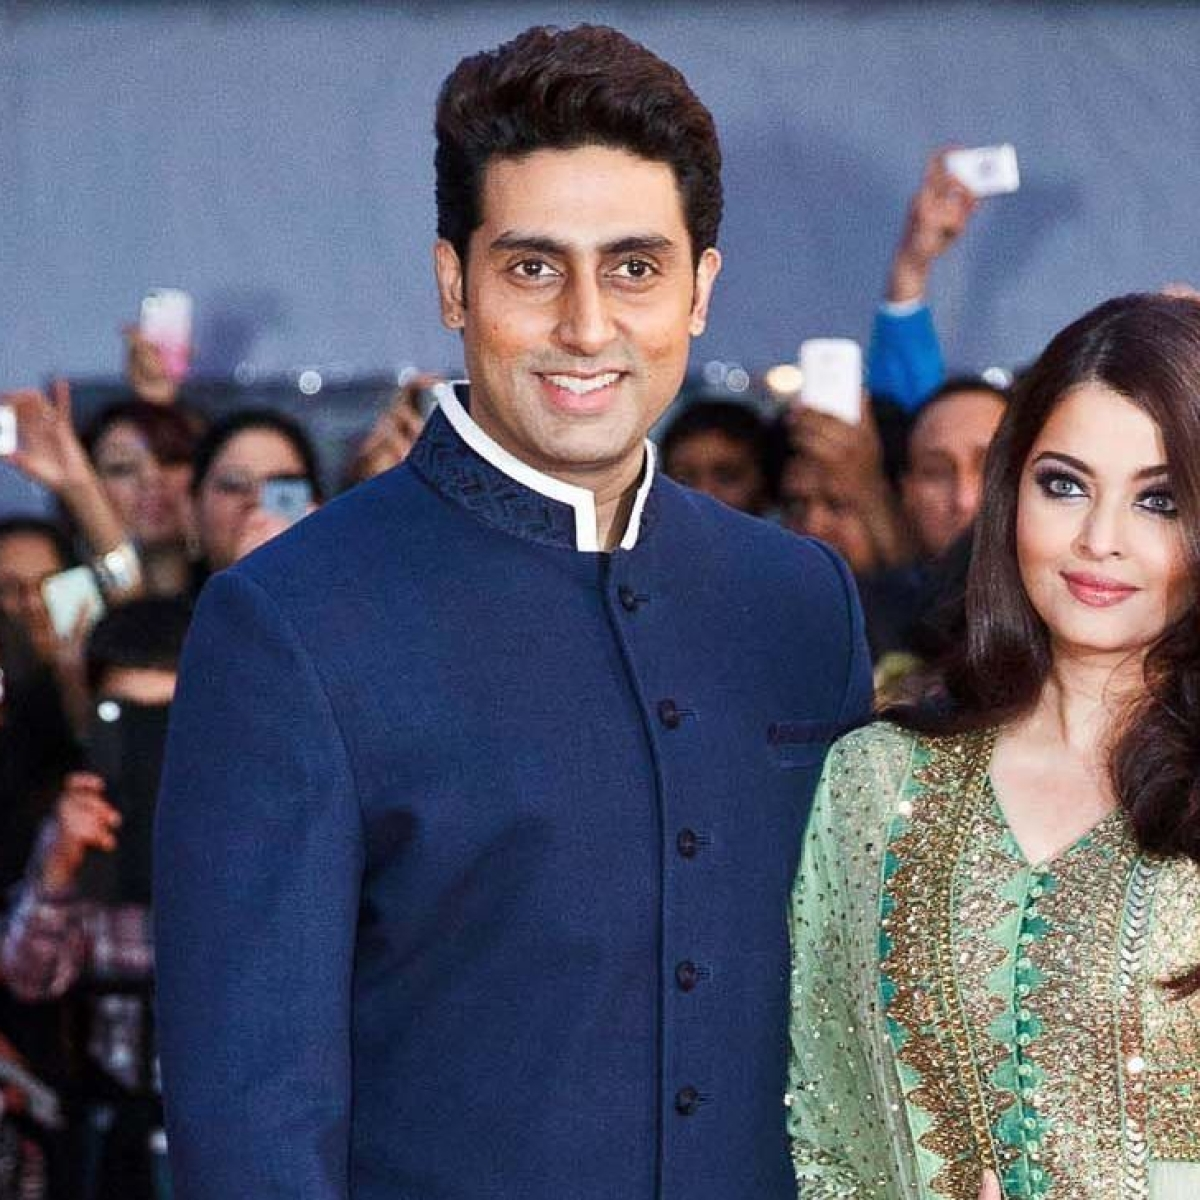 Check out Abhishek Bachchan's epic reply to jealous troll who said 'you've got a very beautiful wife you don't even deserve'